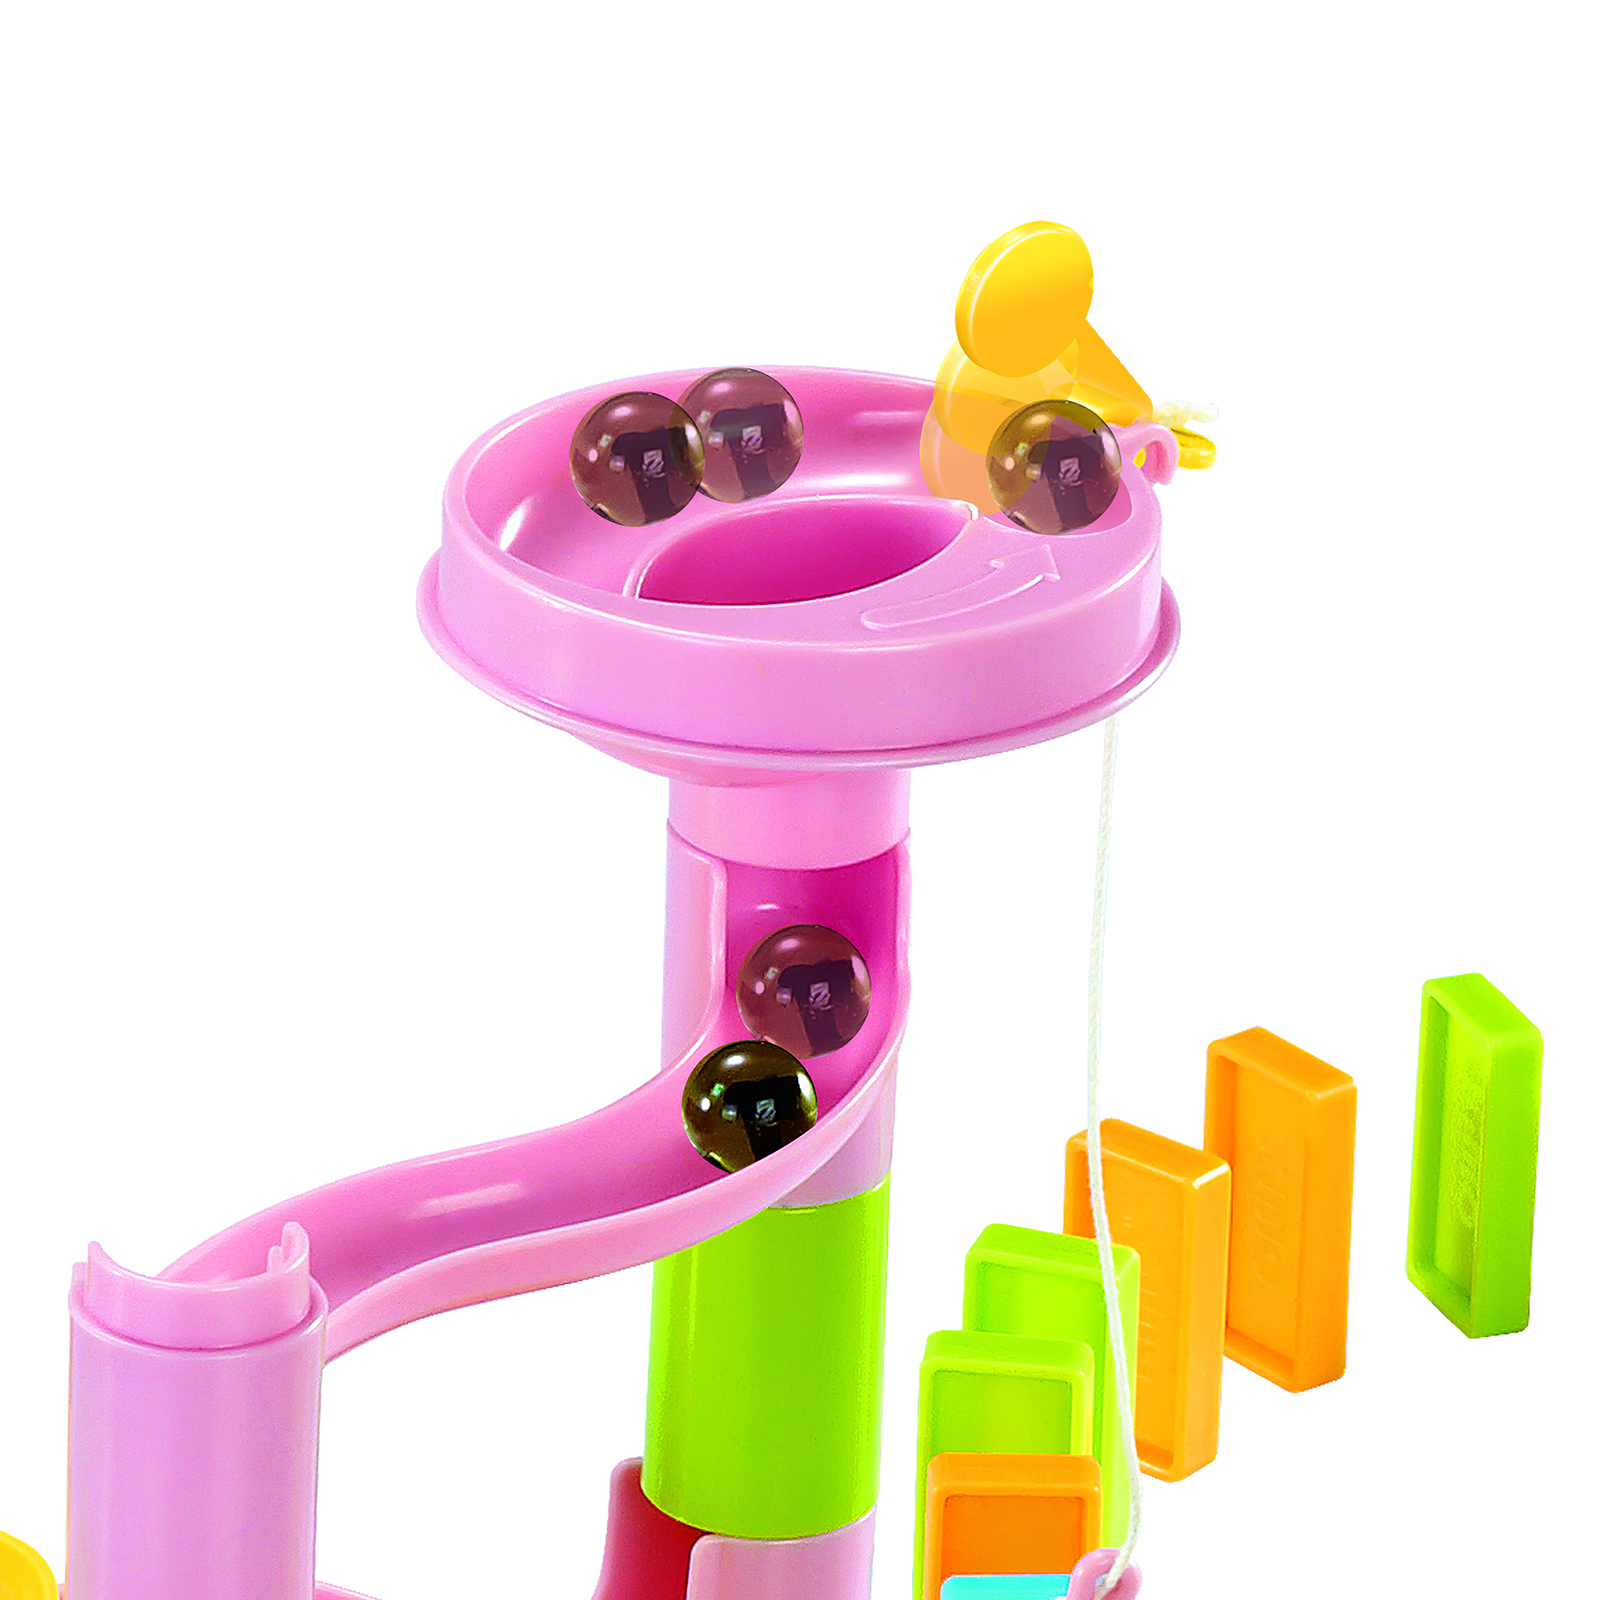 Kids Domino Funnel Slide Building Block Set Colorful Domino Stacking Toy Creative Rolling Maze Building Blocks Educational Toy